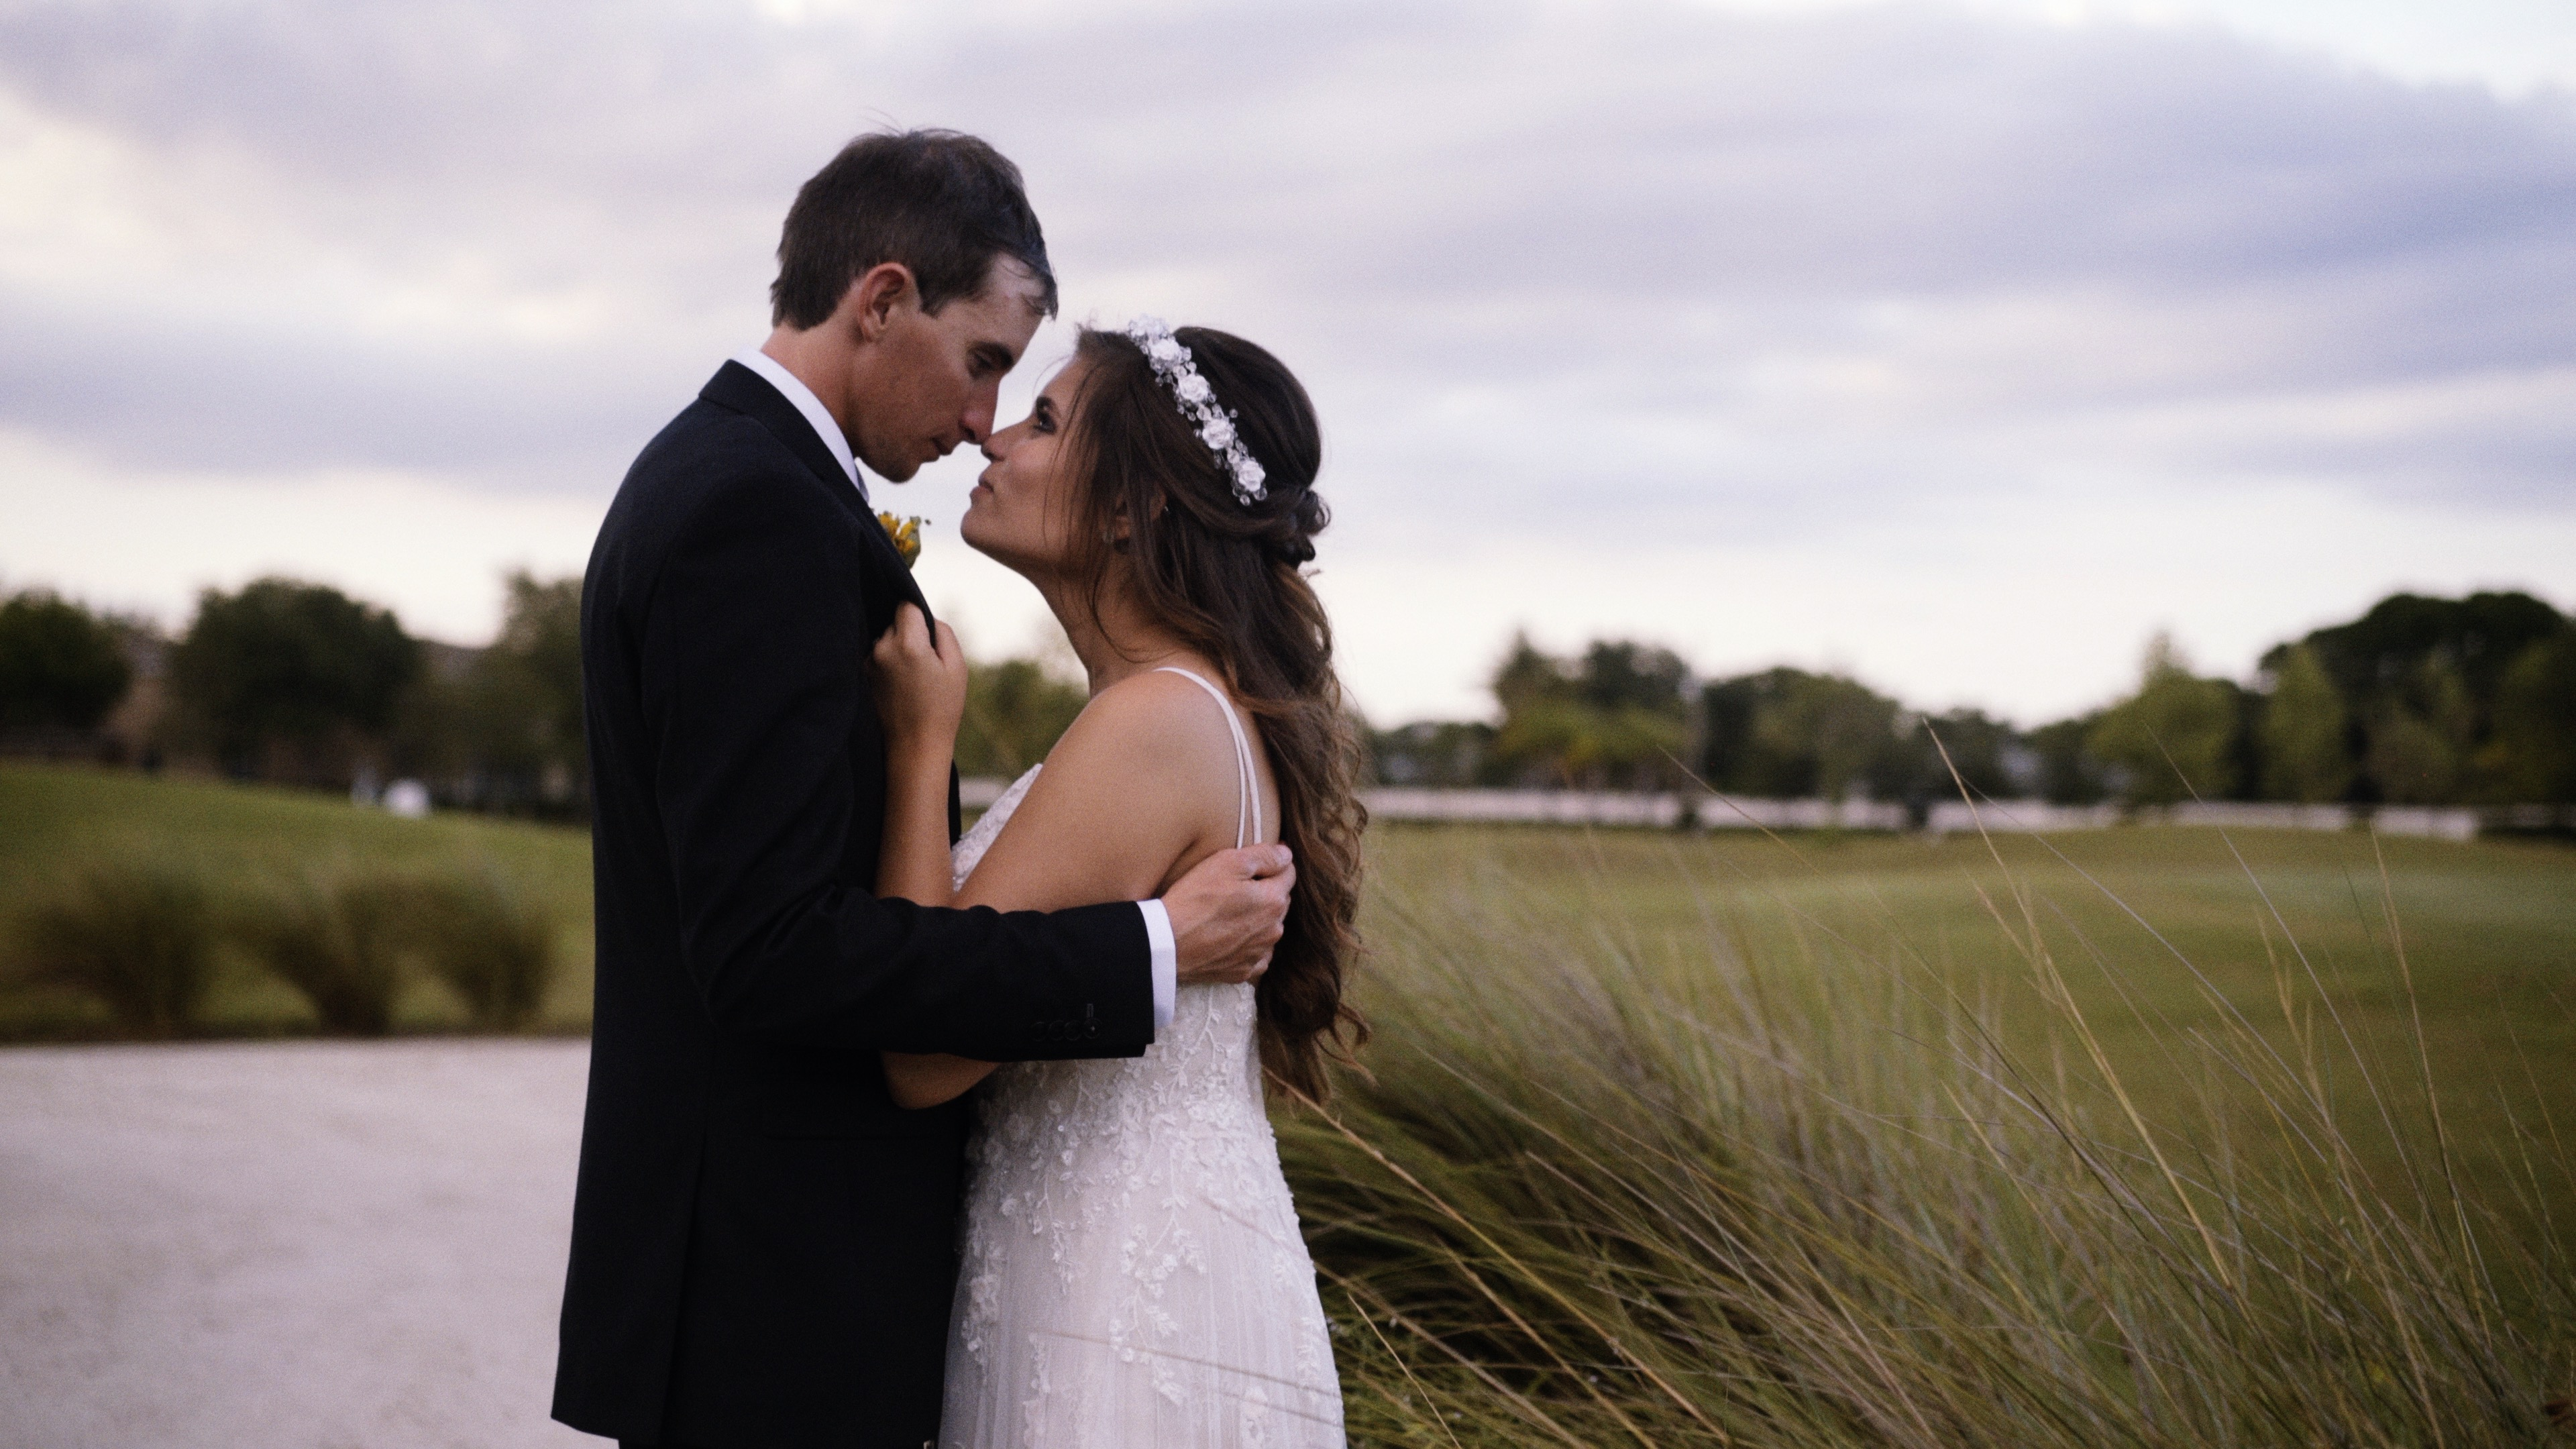 Taylor + Shawn | Vero Beach, Florida | Pointe West Country Club